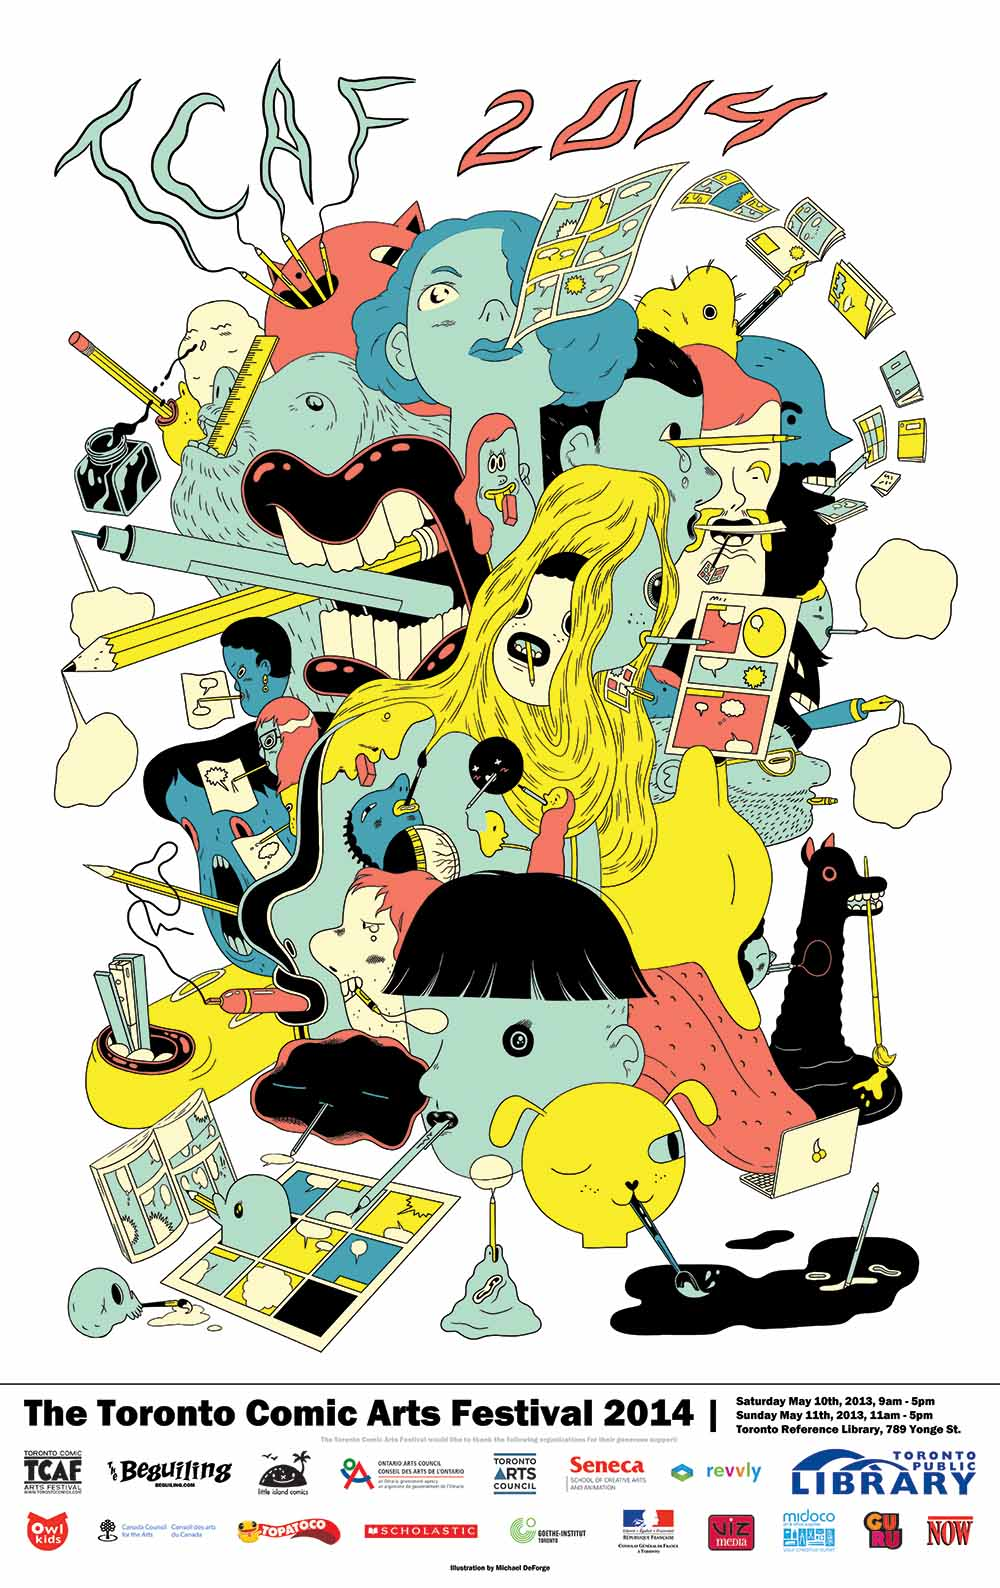 TCAF 2014 Poster (Michael DeForge)